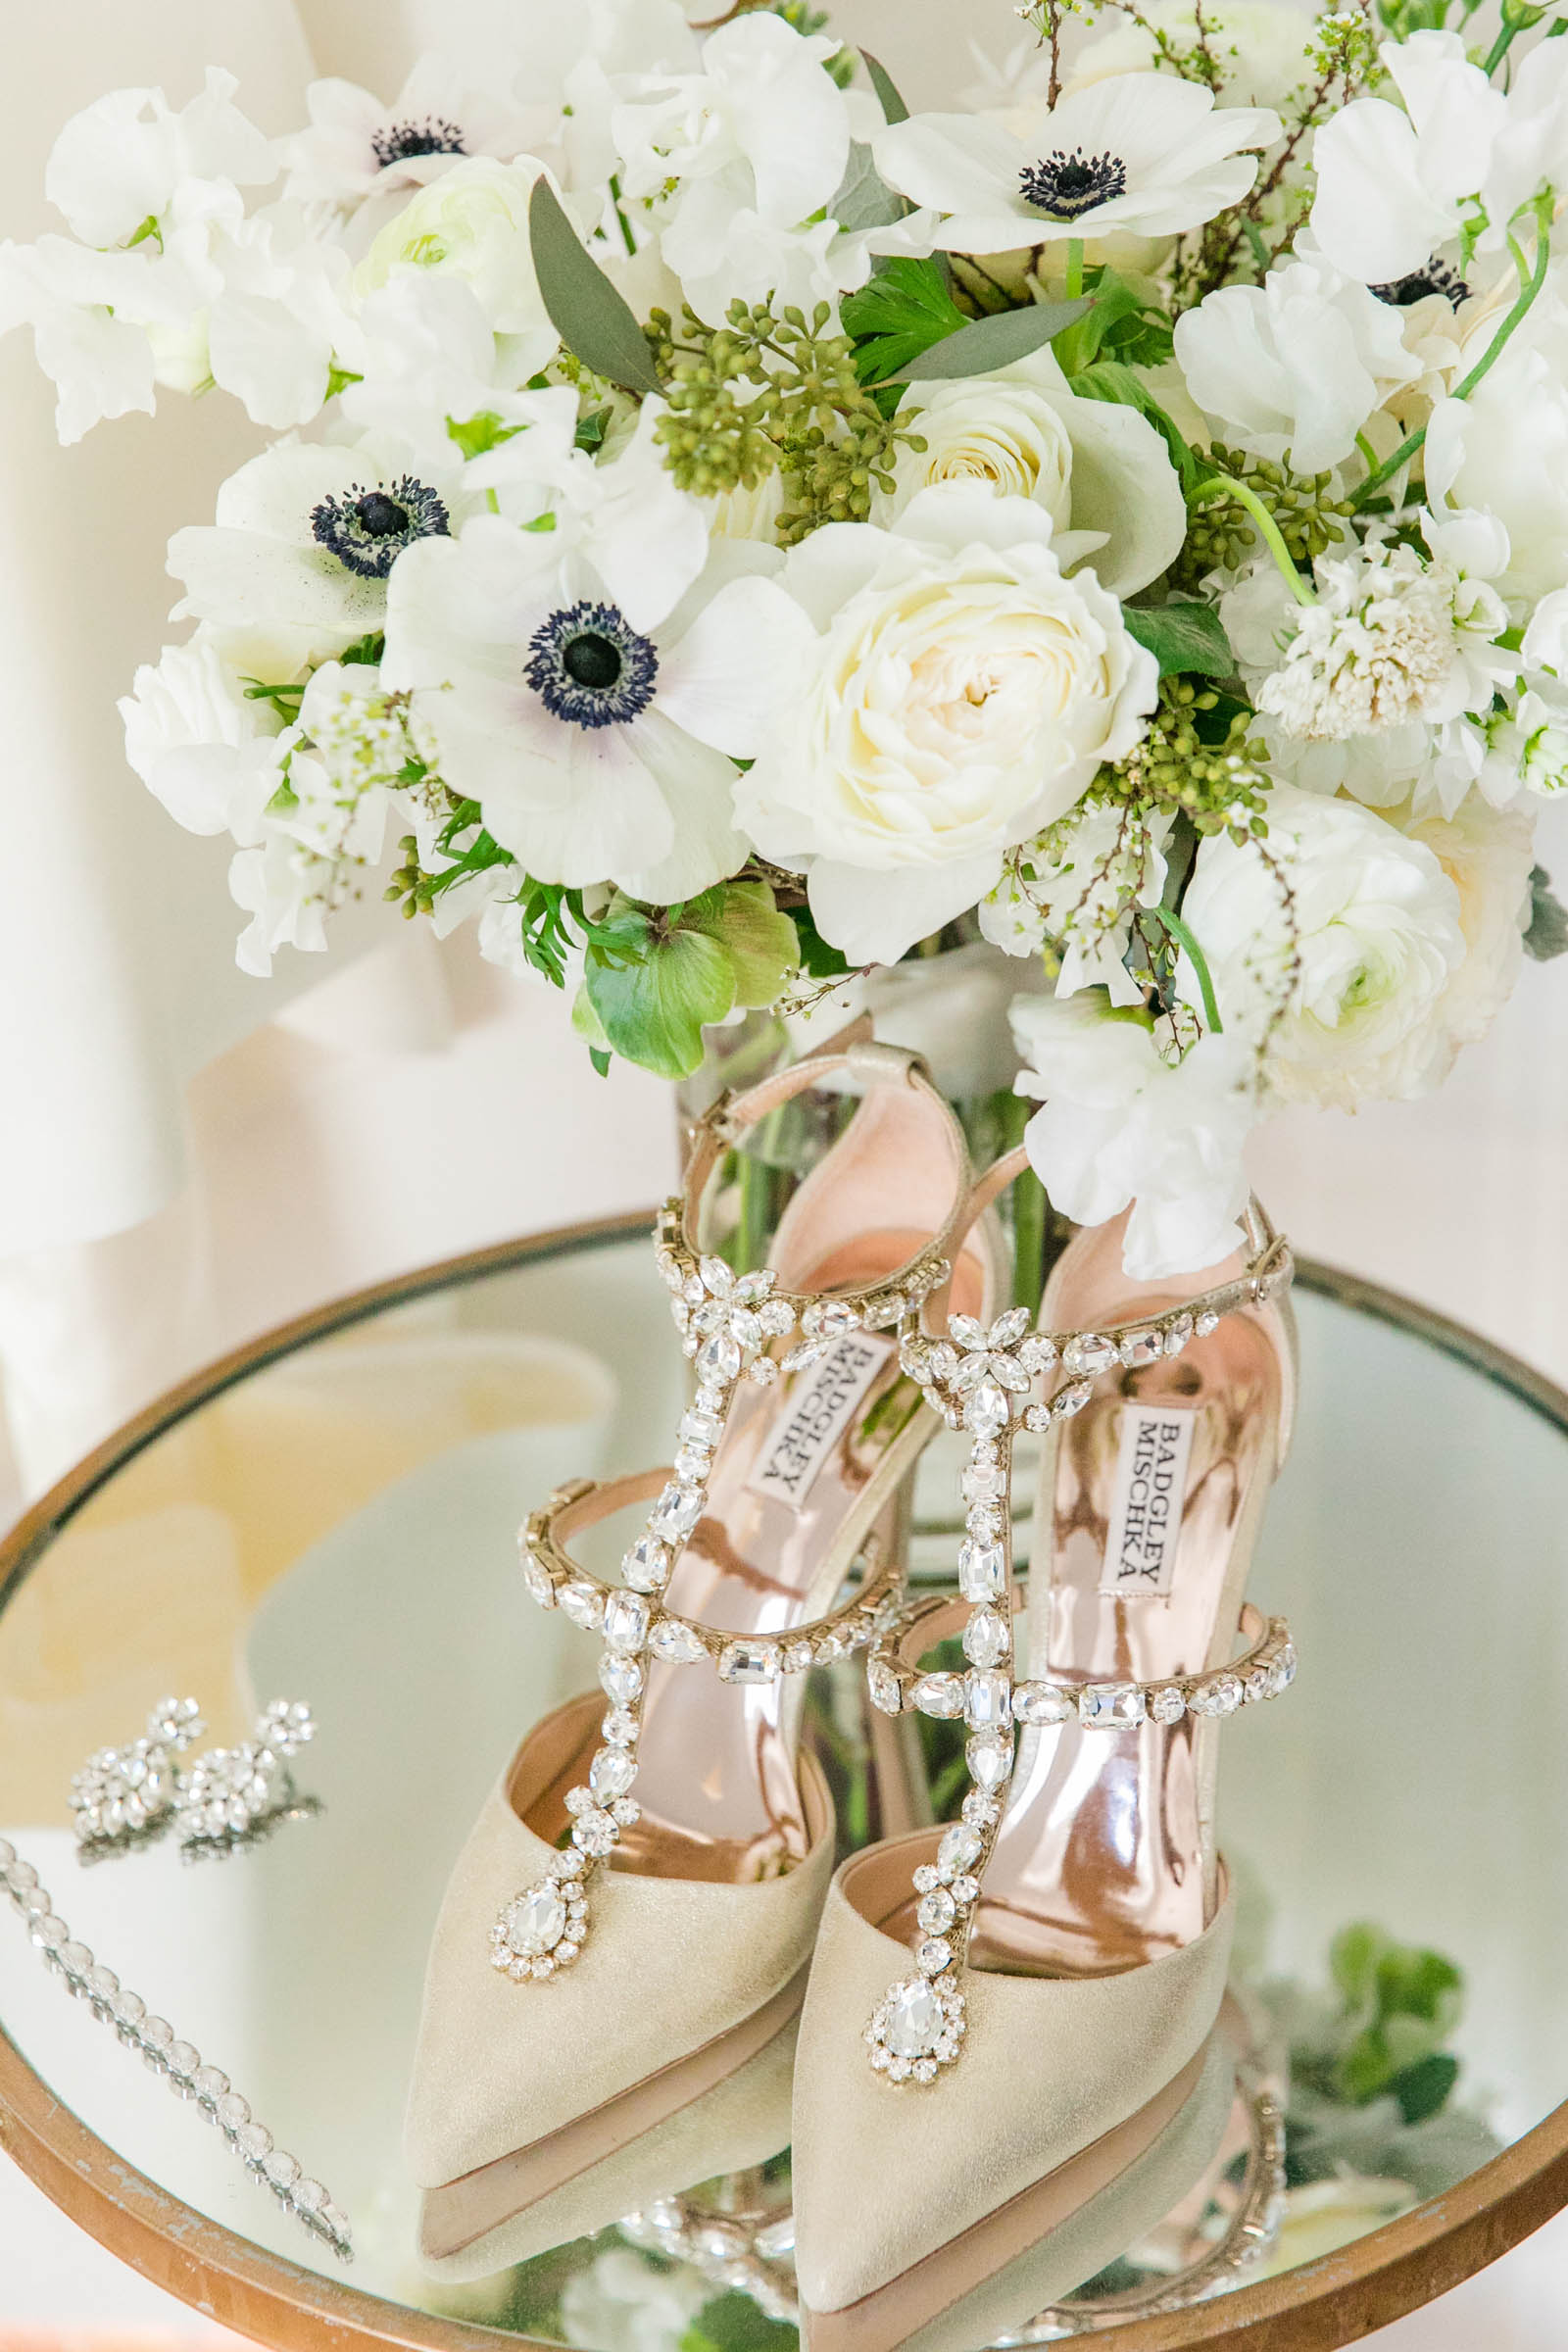 shoes-and-earrings-with-bouquet-in-mirror-dana-cubbage-weddings